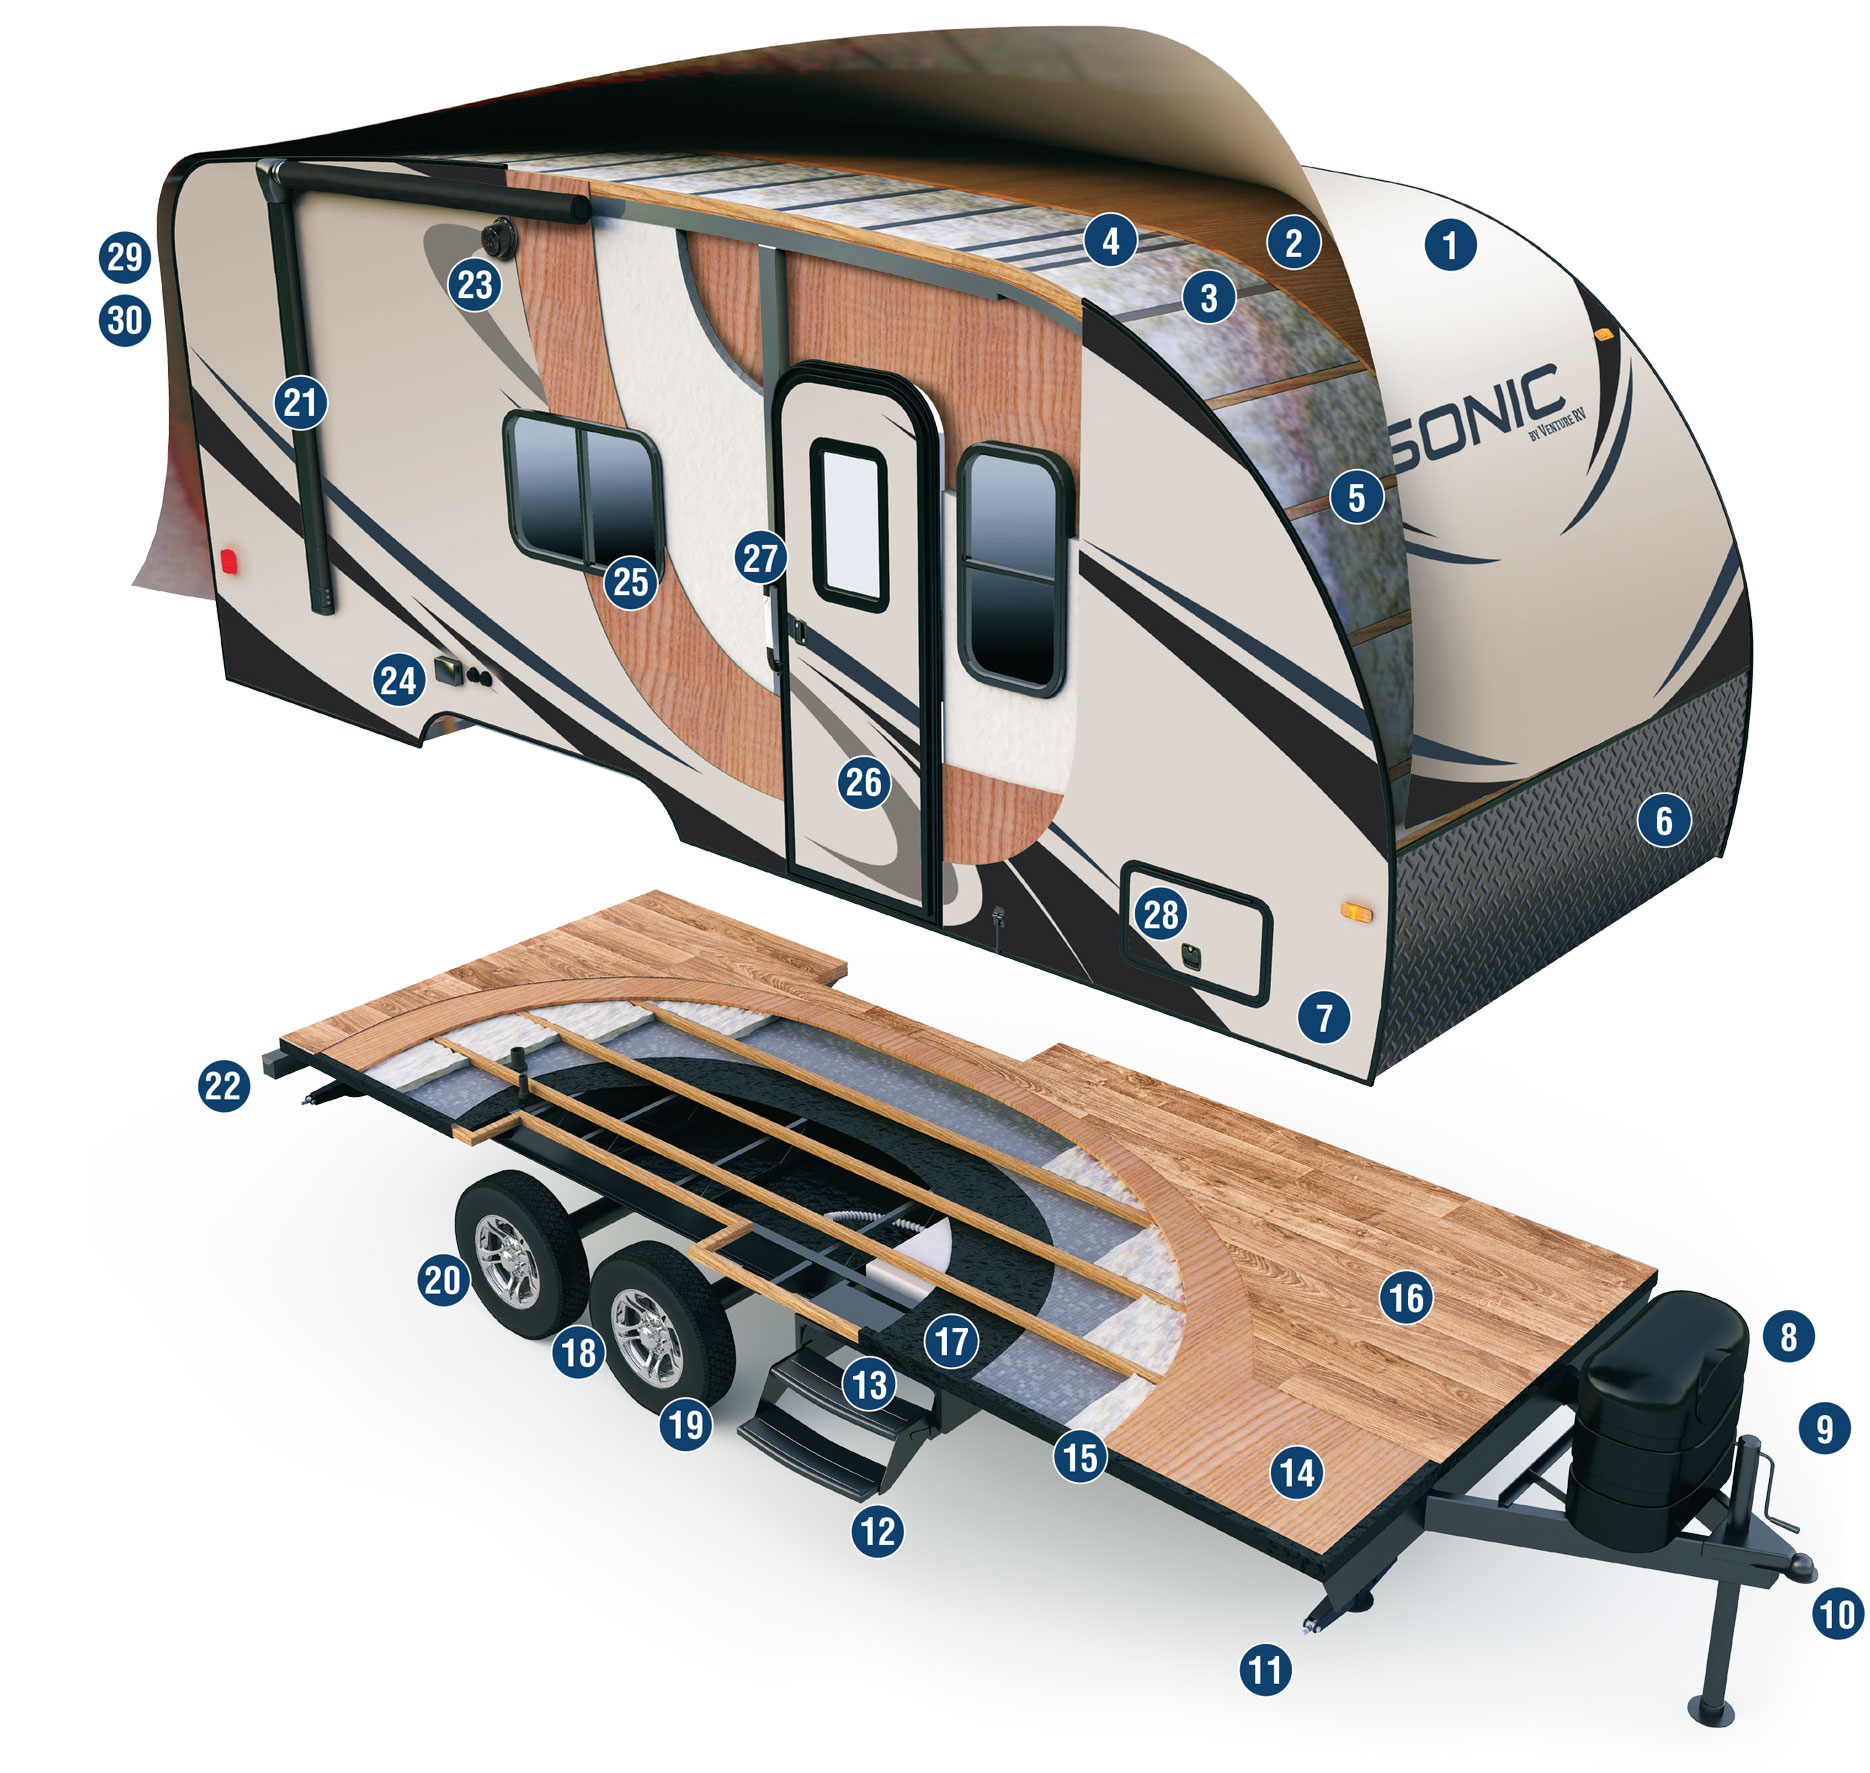 2015 Venture RV Sonic Travel Trailer Construction